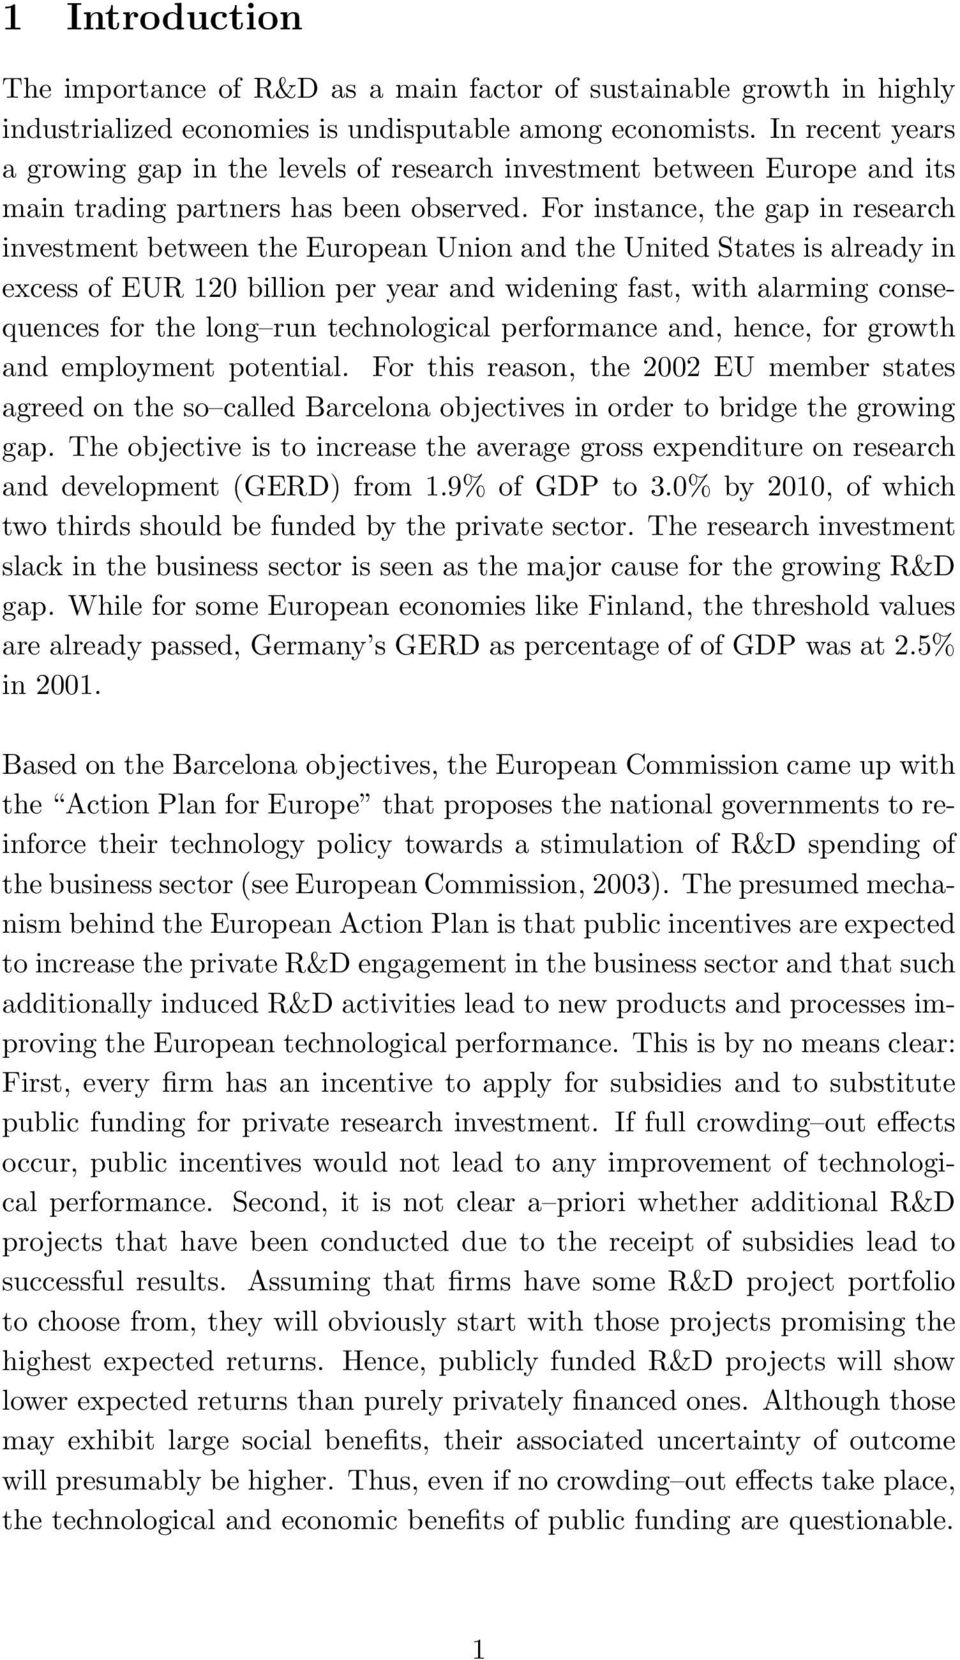 For instance, the gap in research investment between the European Union and the United States is already in excess of EUR 120 billion per year and widening fast, with alarming consequences for the